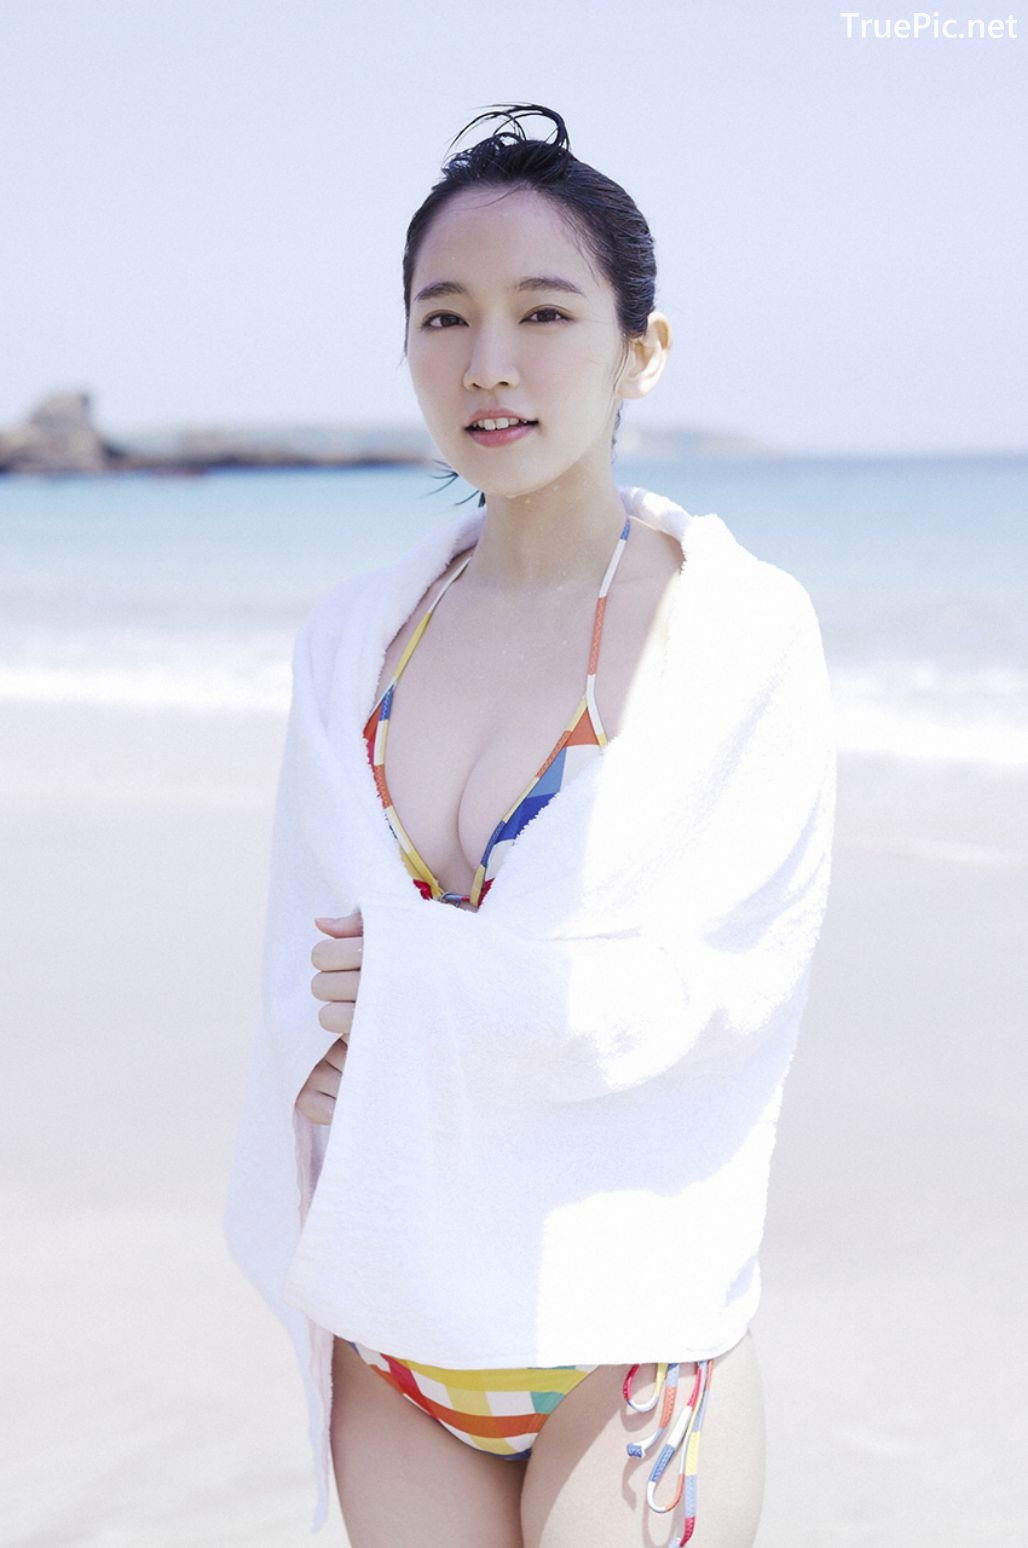 Image-Japanese-Actress-And-Model-Riho-Yoshioka-Pure-Beauty-Of-Sea-Goddess-TruePic.net- Picture-8